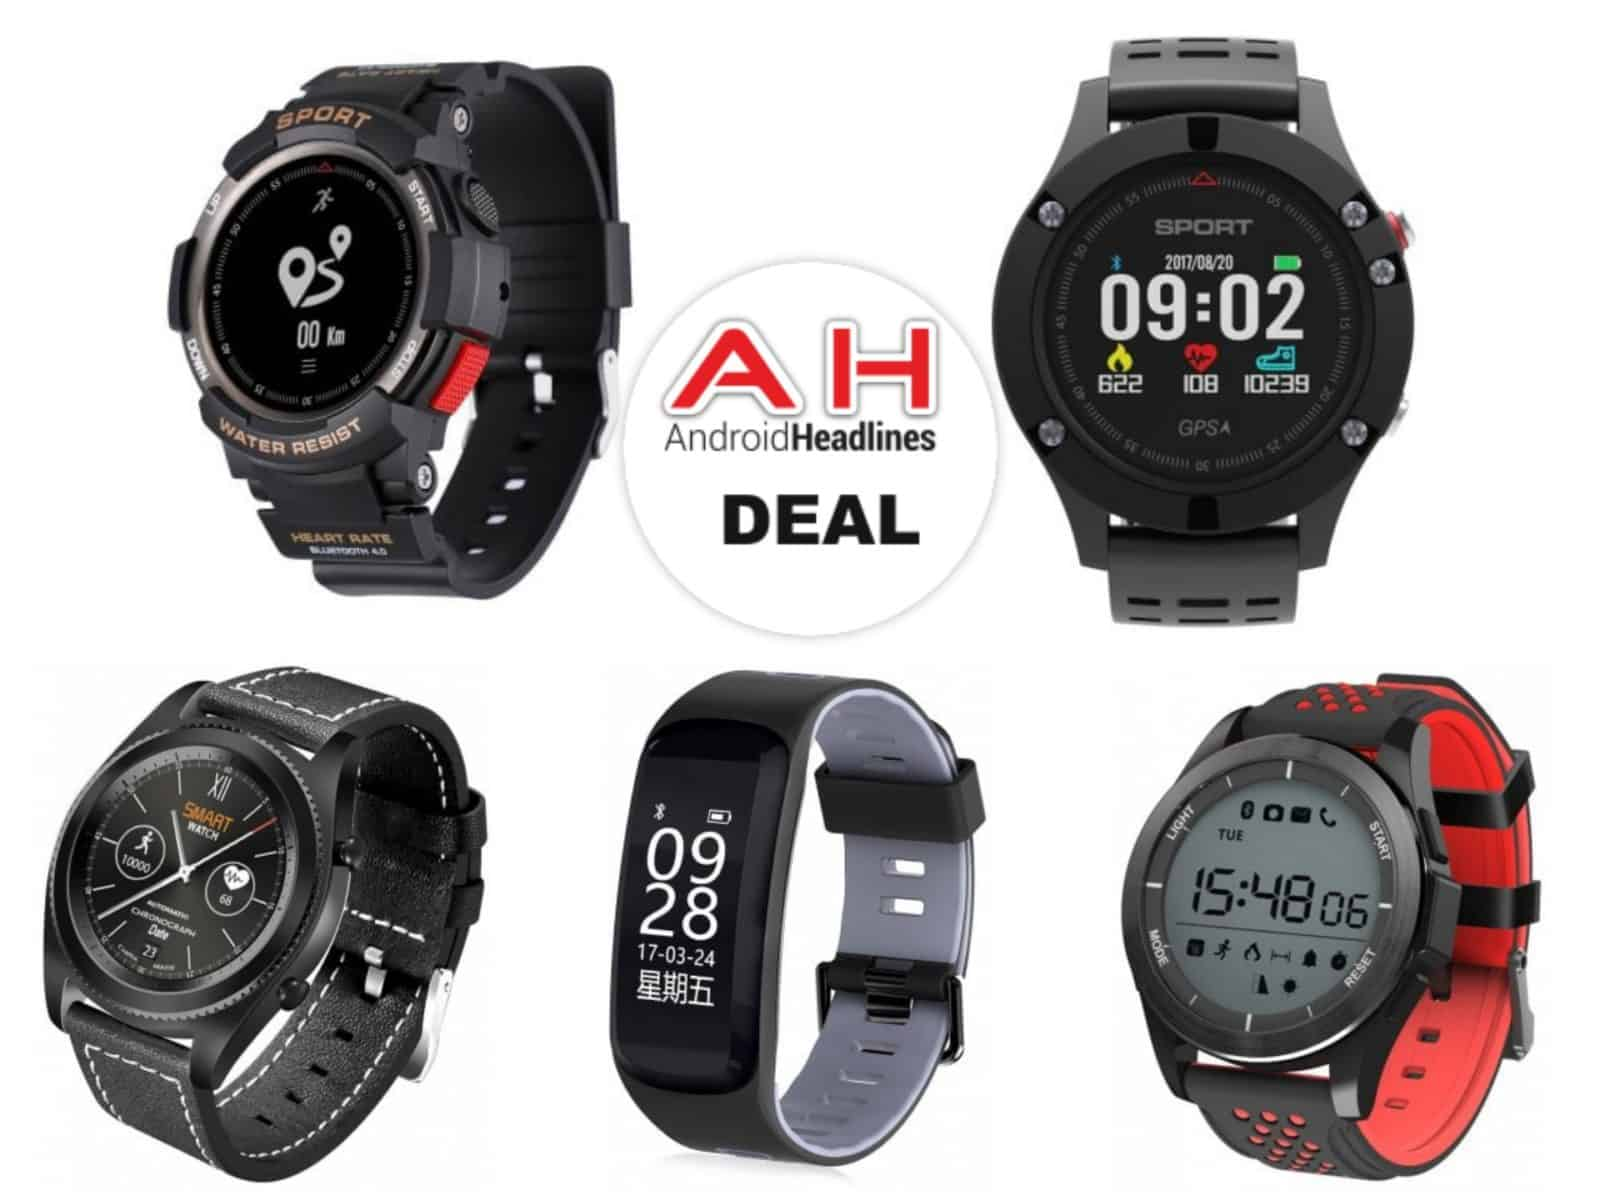 rugged and is smartwatch wsd a the straight trek can top applications android casio waterproof rounder wear all from rug news run smartwatches so fantastic download you runs comparison device pro it